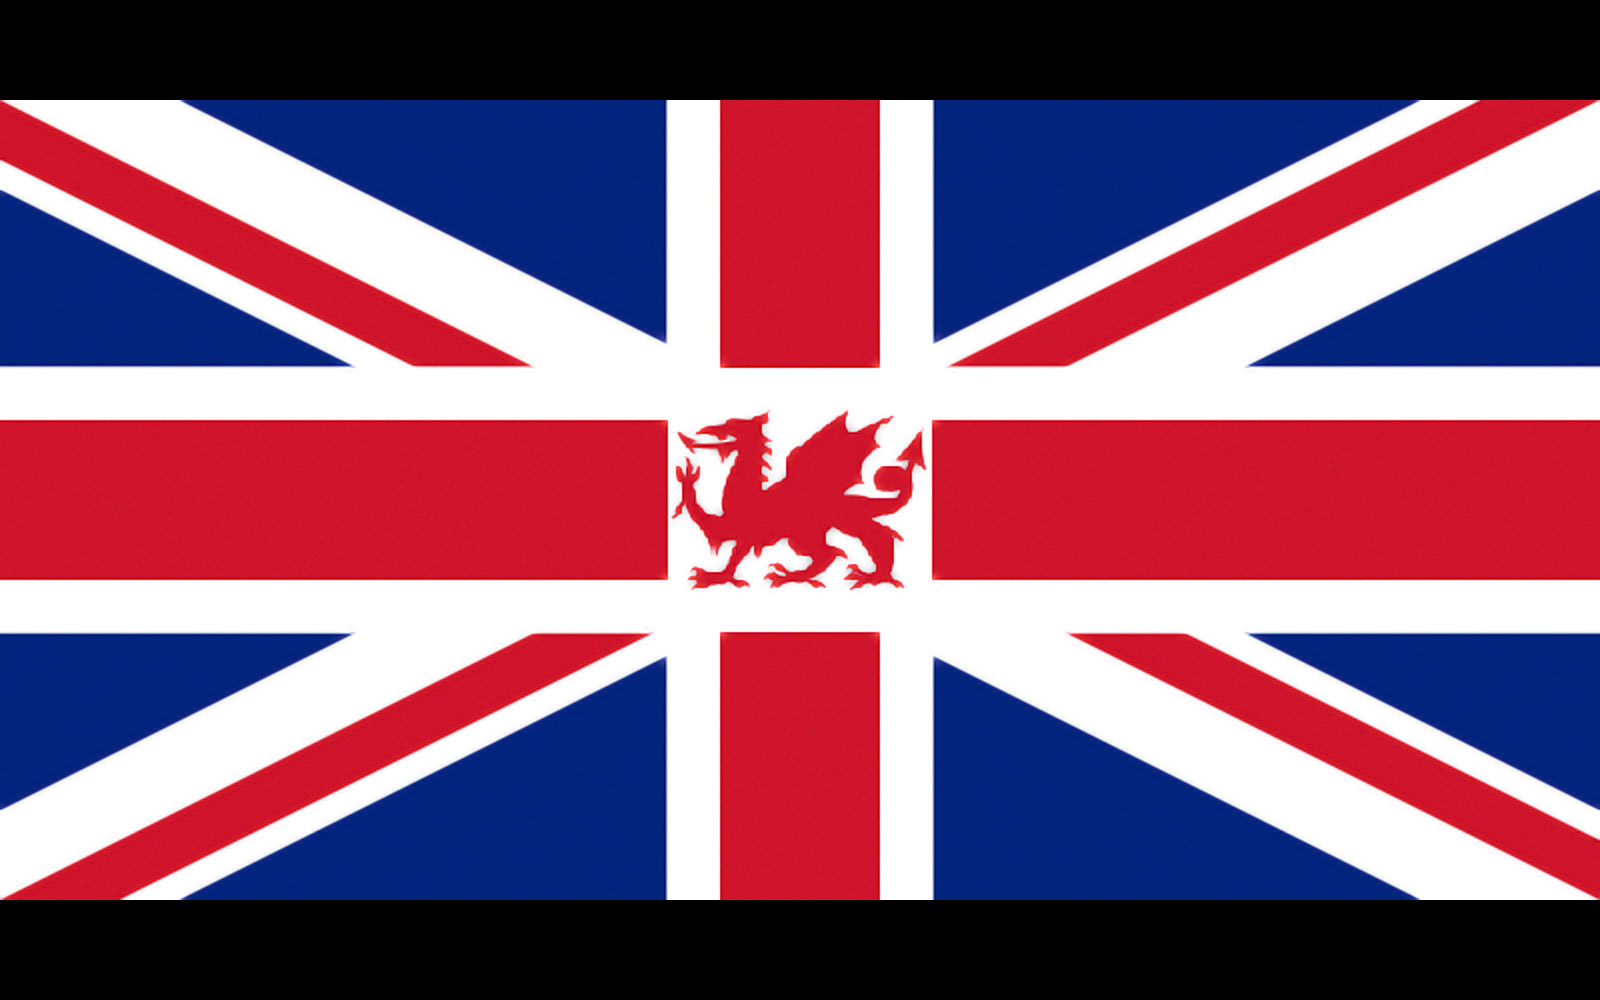 British flag with welsh dragon   Bodybuildingcom Forums 1600x1000